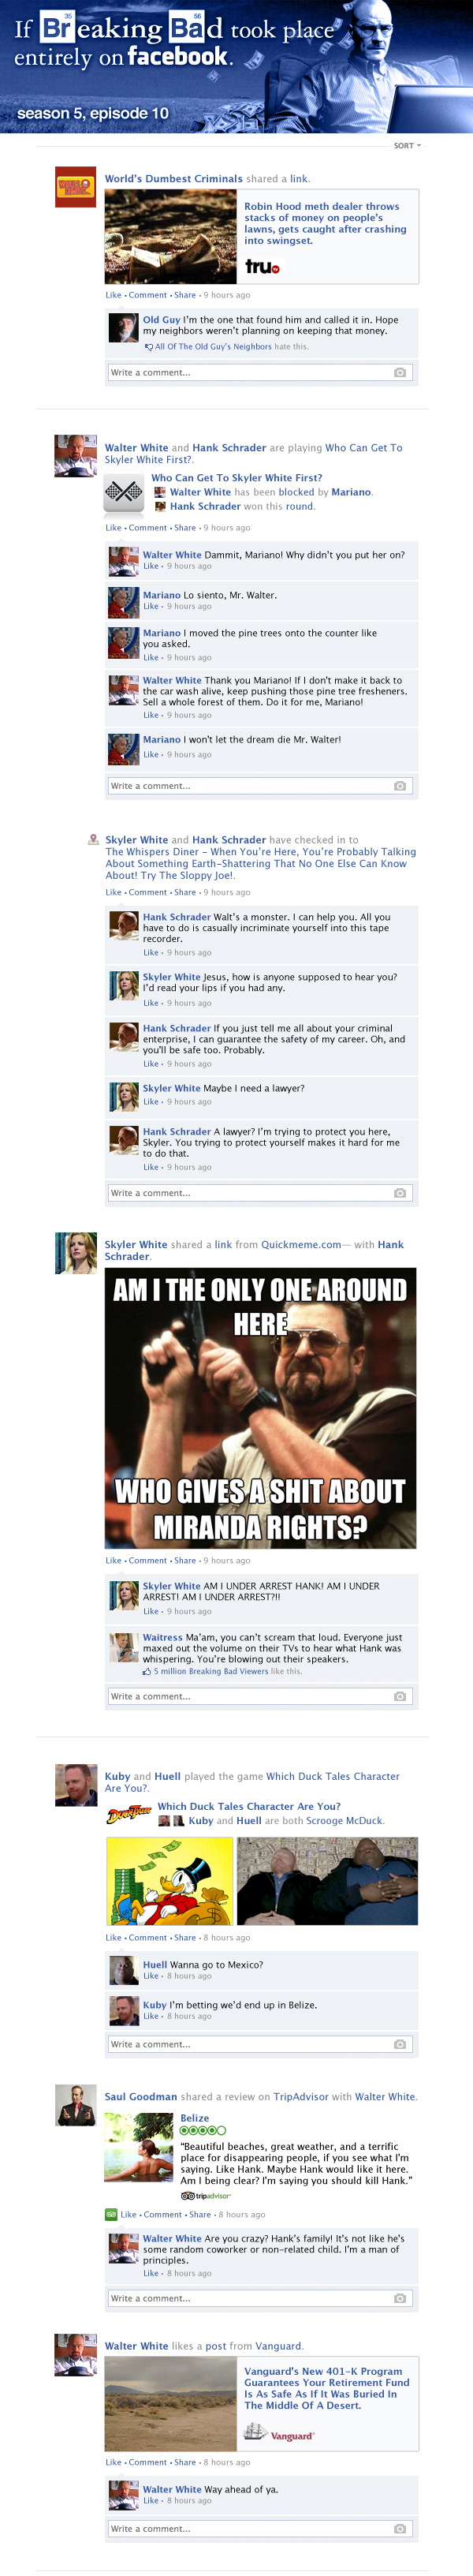 If Breaking Bad took place entirely on Facebook - Season 5, Episode 10.